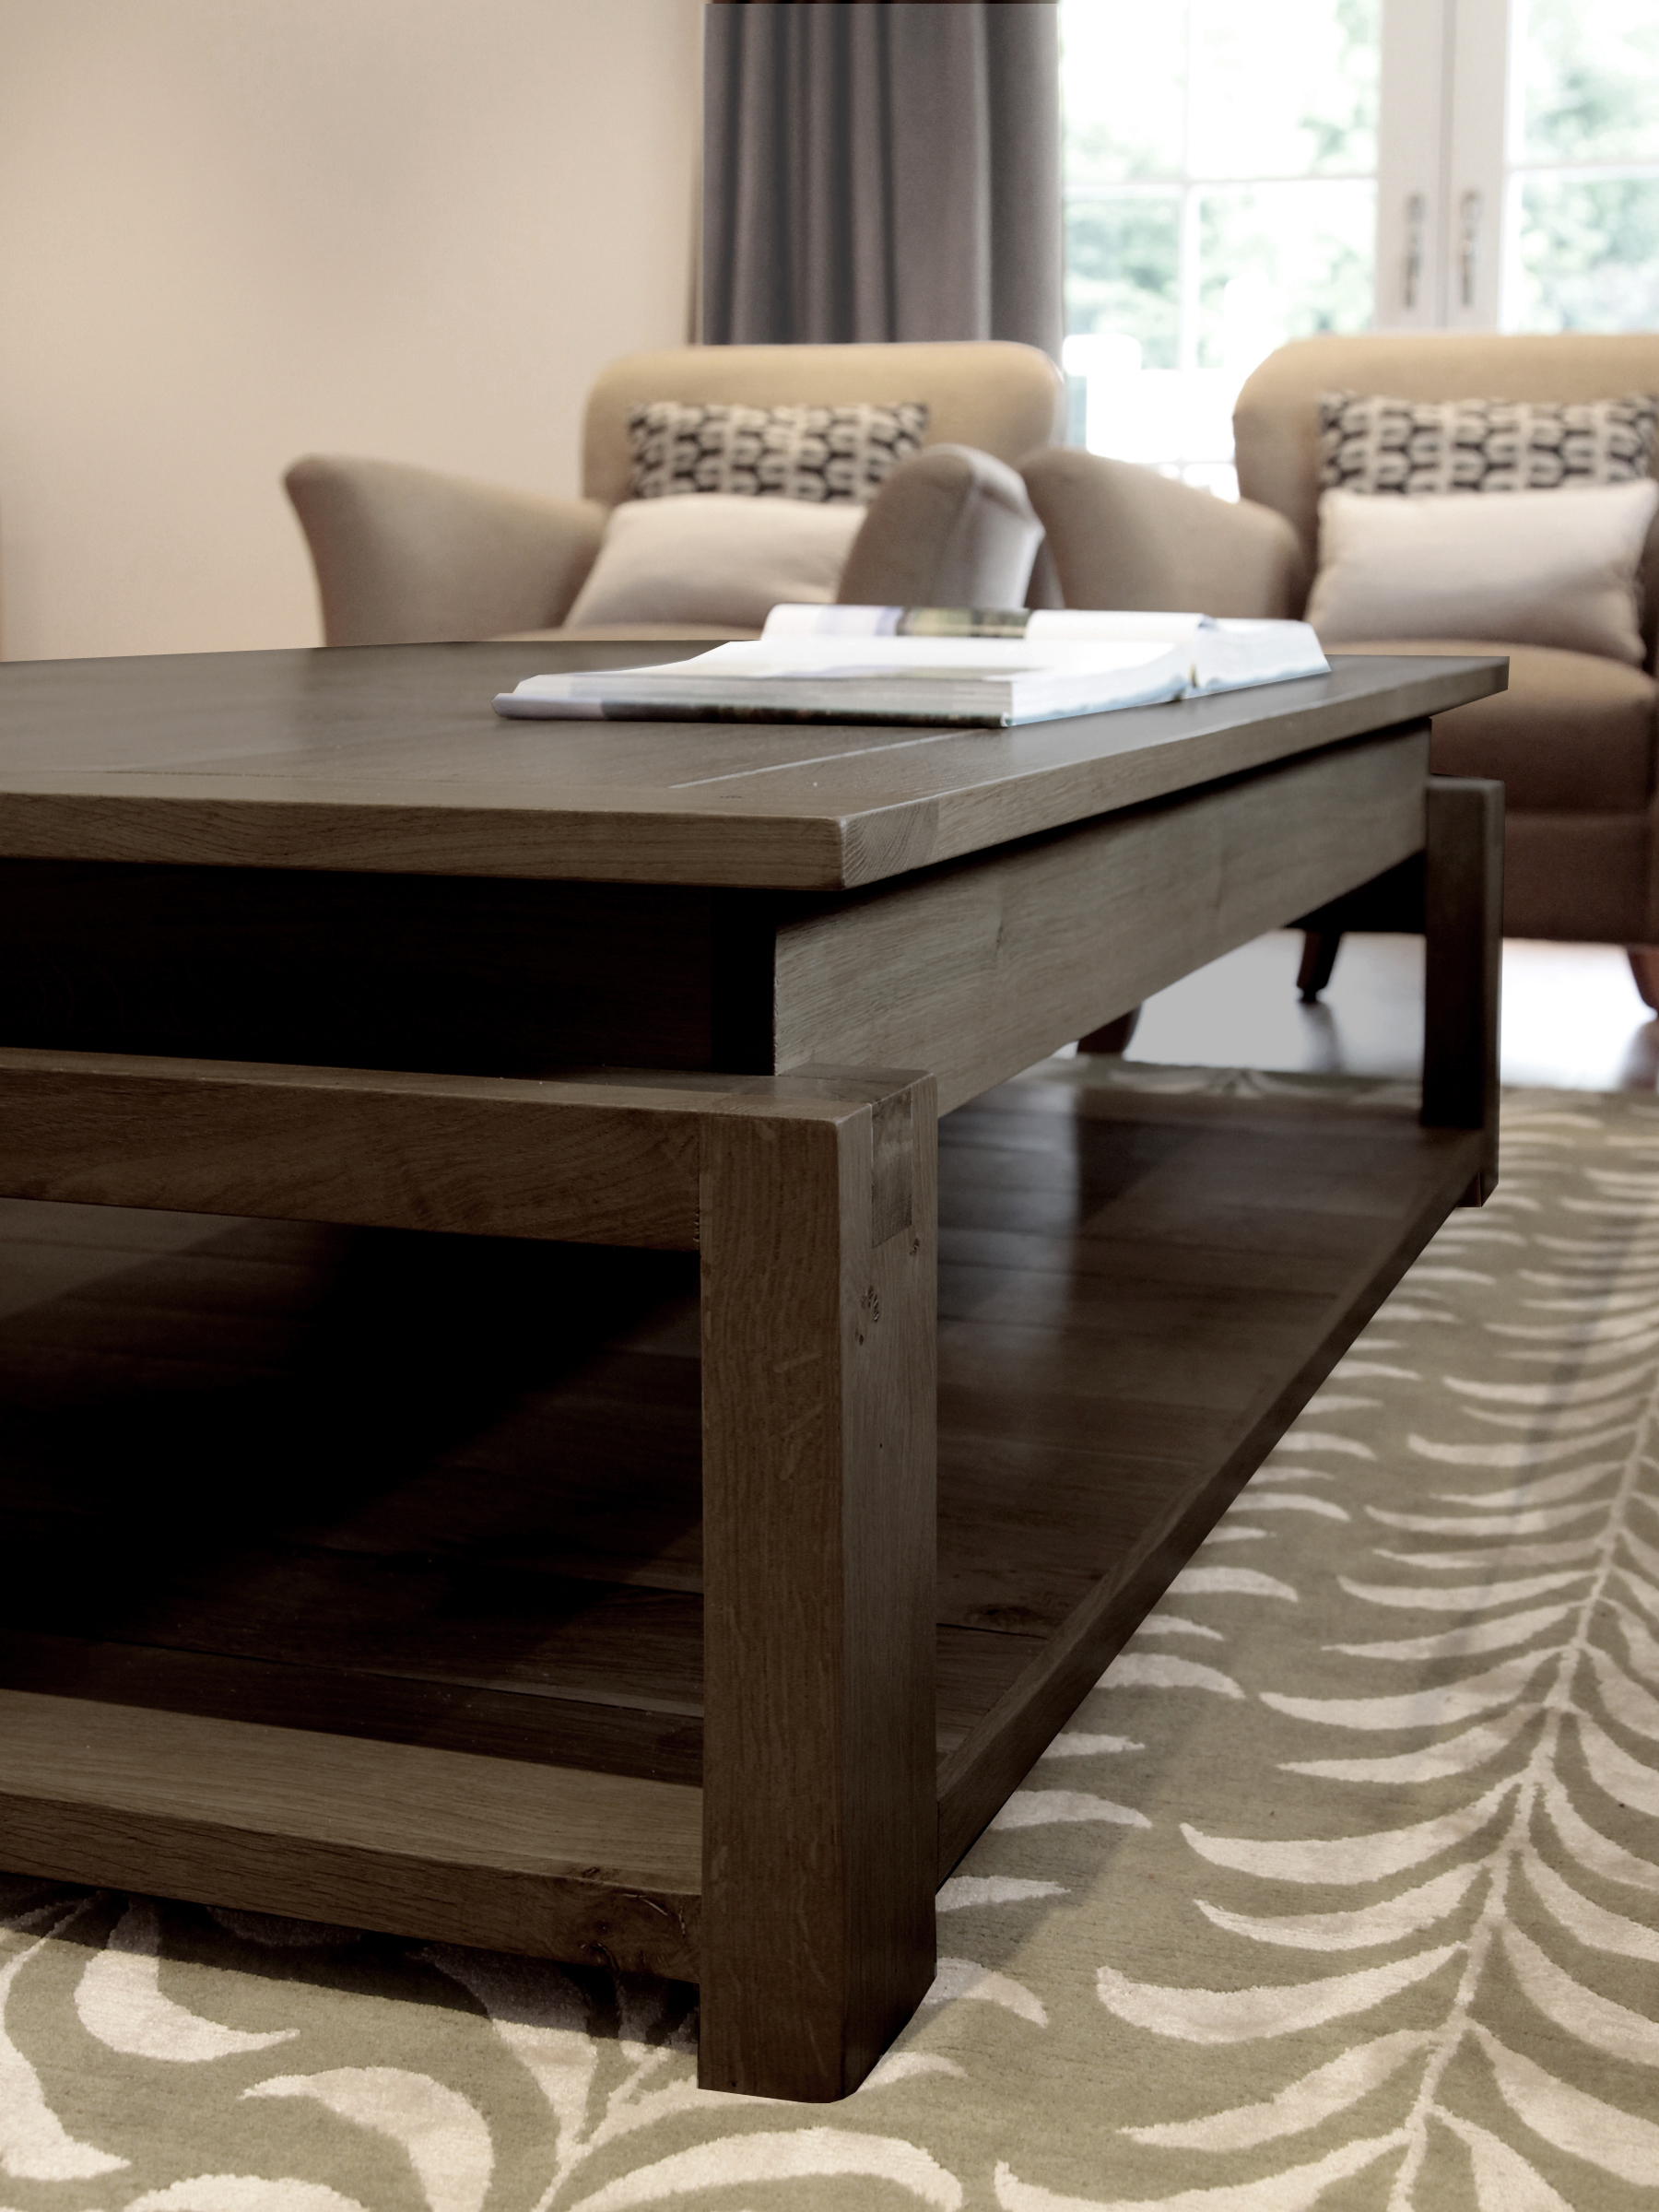 HAmpshire interior design living room Table